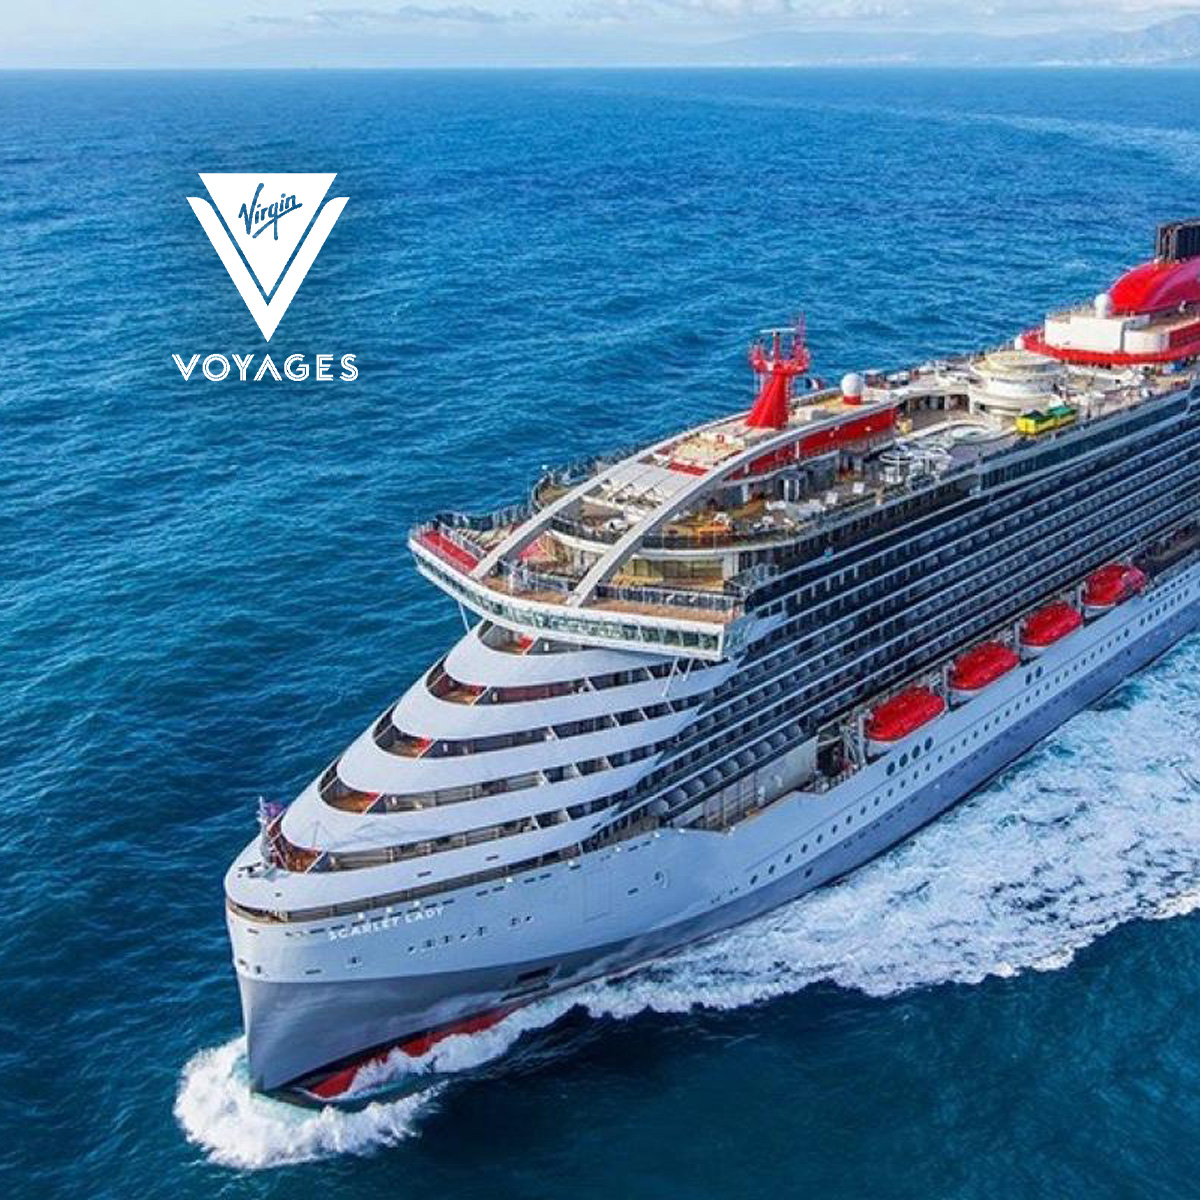 Virgin Voyages |  Launching of a New Cruise Line